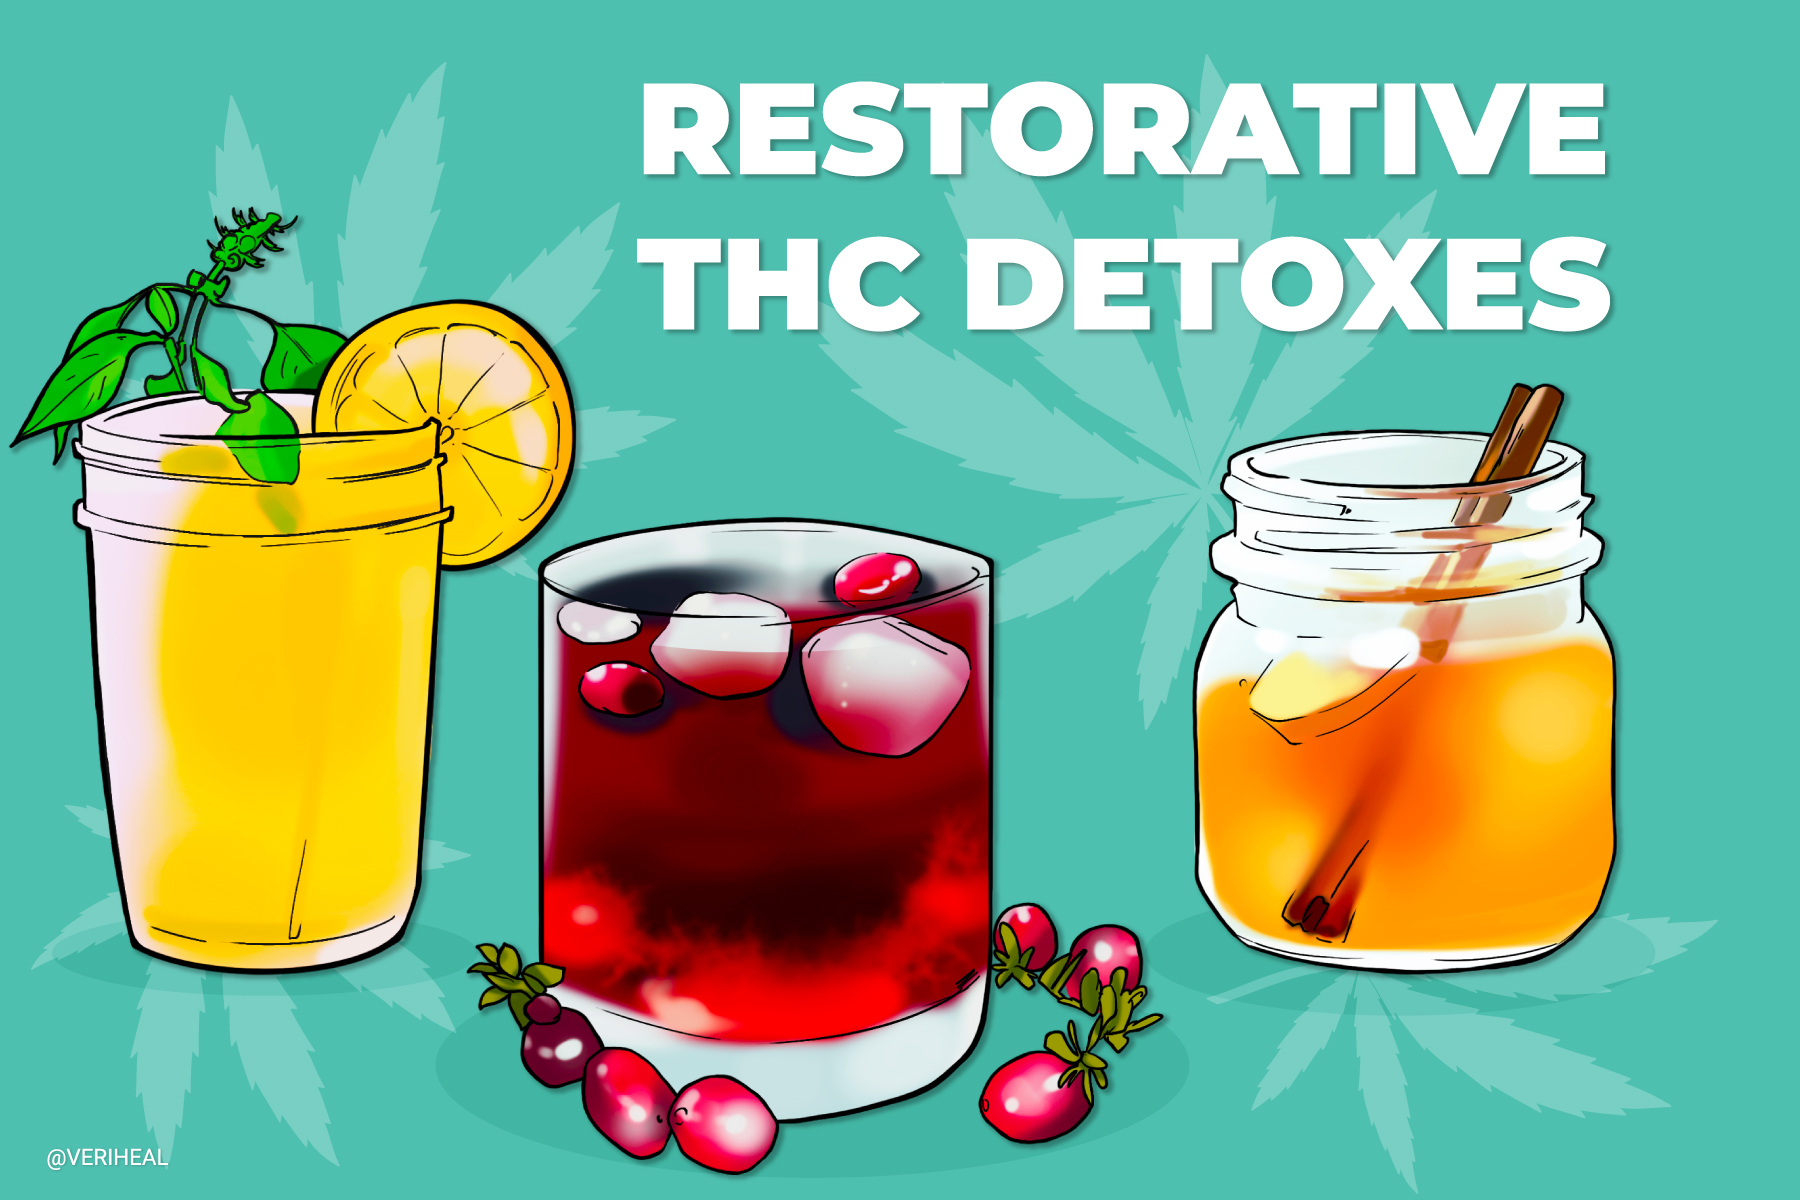 Check Out These Restorative THC Detox Methods